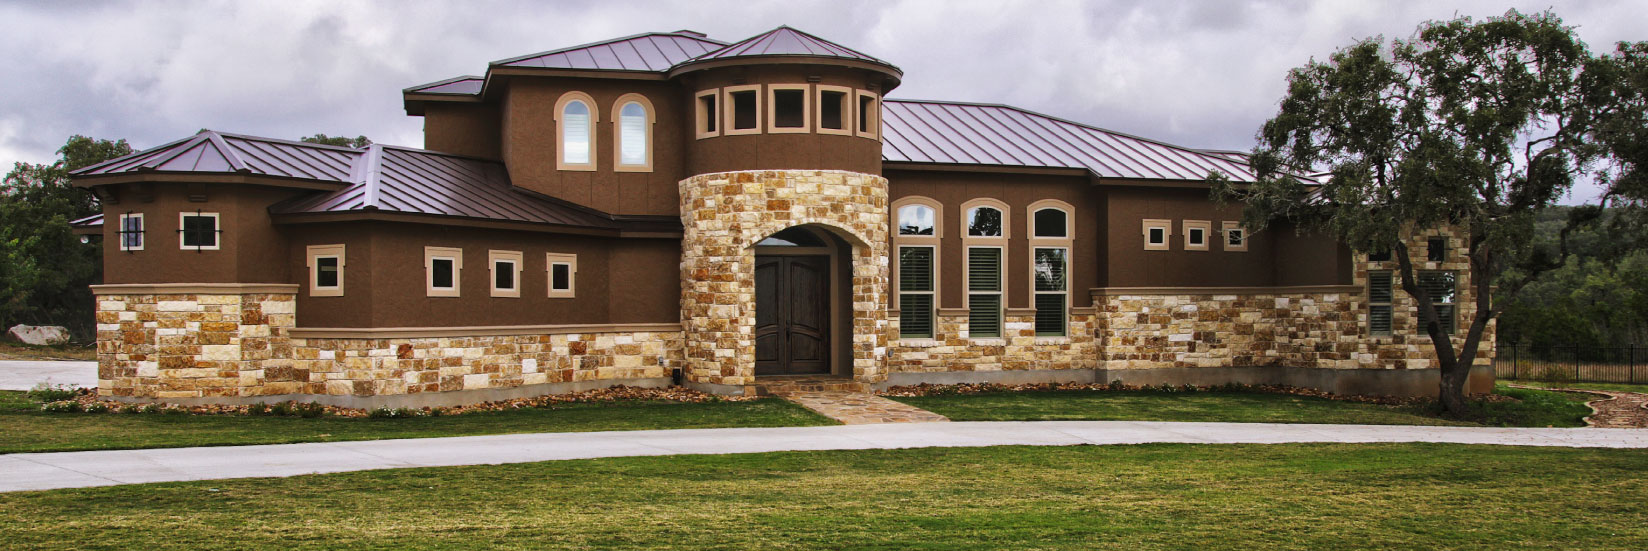 Custom Home Builder New Braunfels